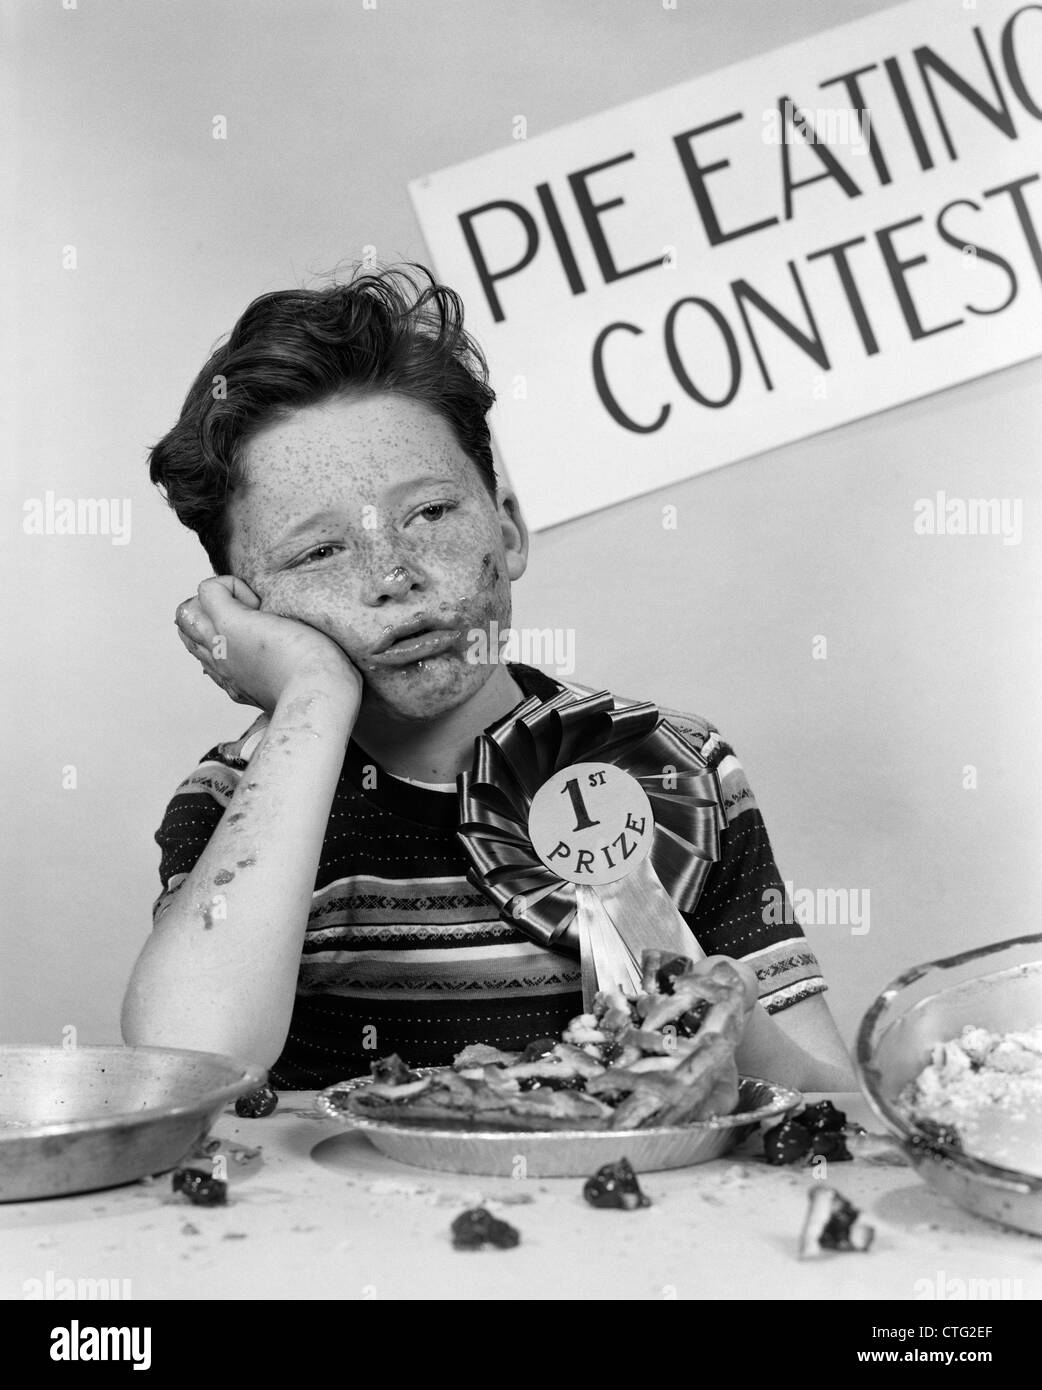 1950s BOY WINS 1ST PRIZE AT PIE-EATING CONTEST AND LOOKS SICK - Stock Image